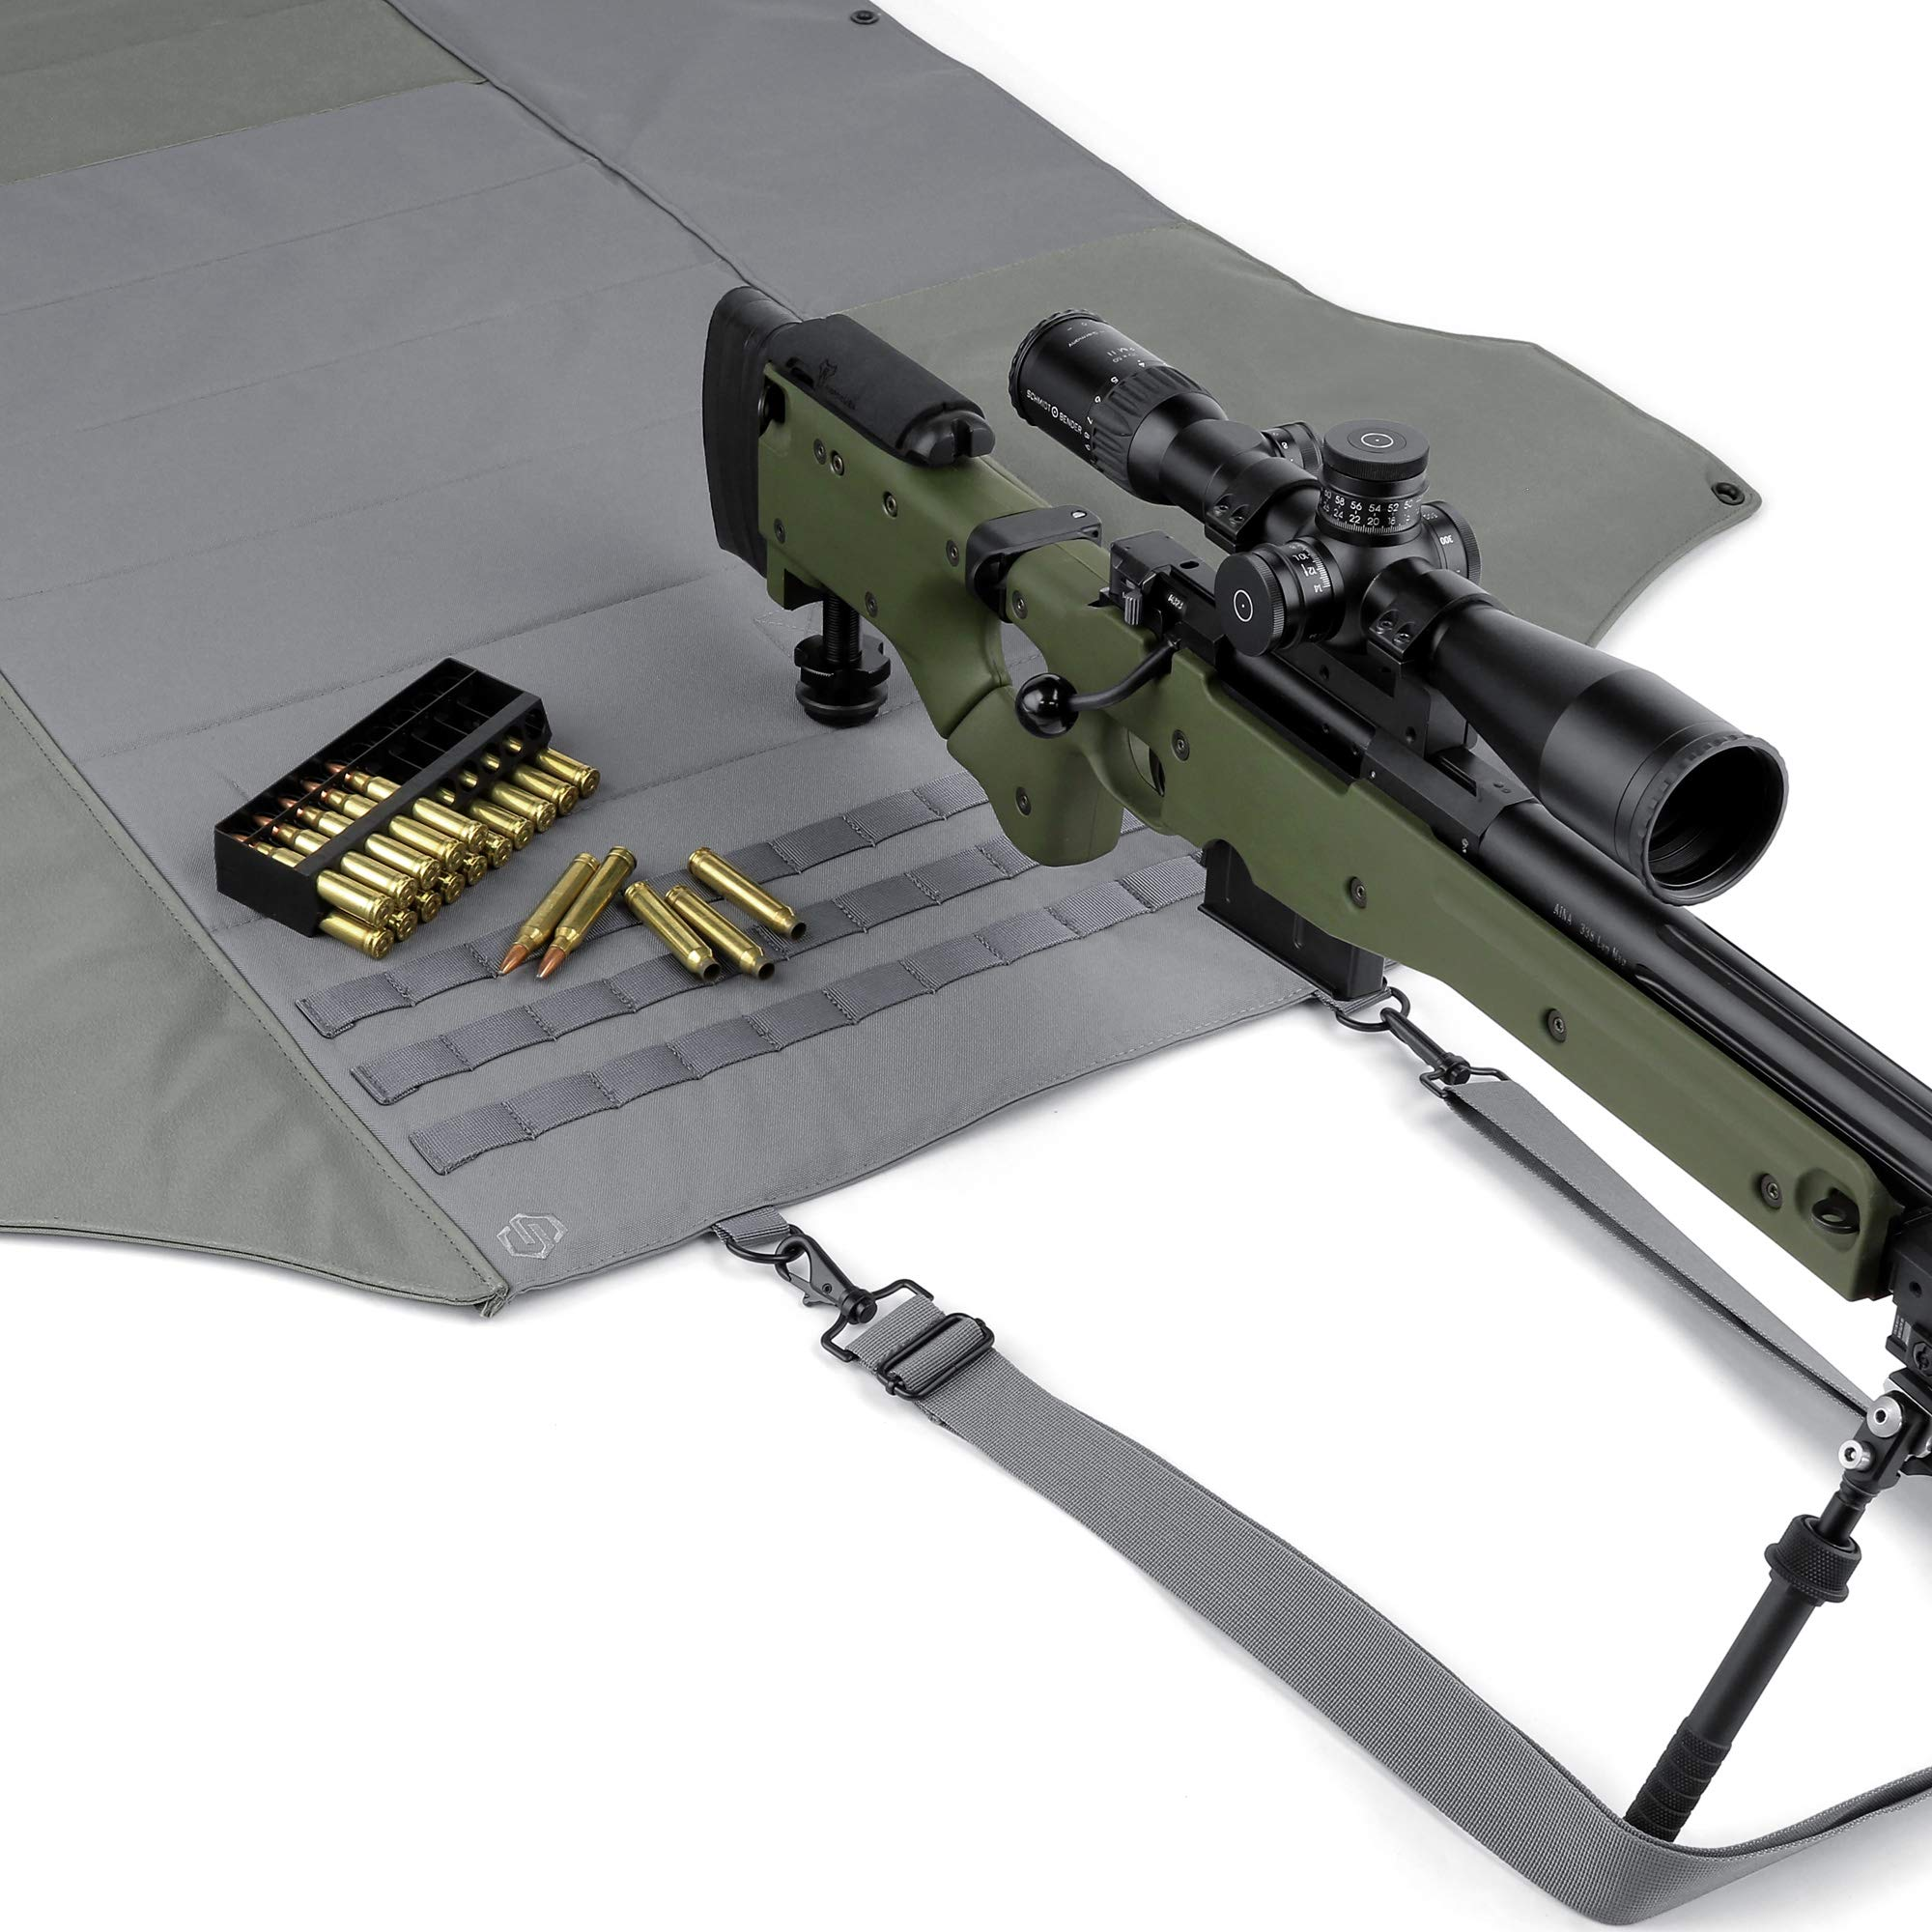 Savior Equipment Tactical Deluxe Padded Quick Release All-Purpose Shooting Mat - Anti-Slippery, Roll-Up Style w/Carrying Handle by Savior Equipment